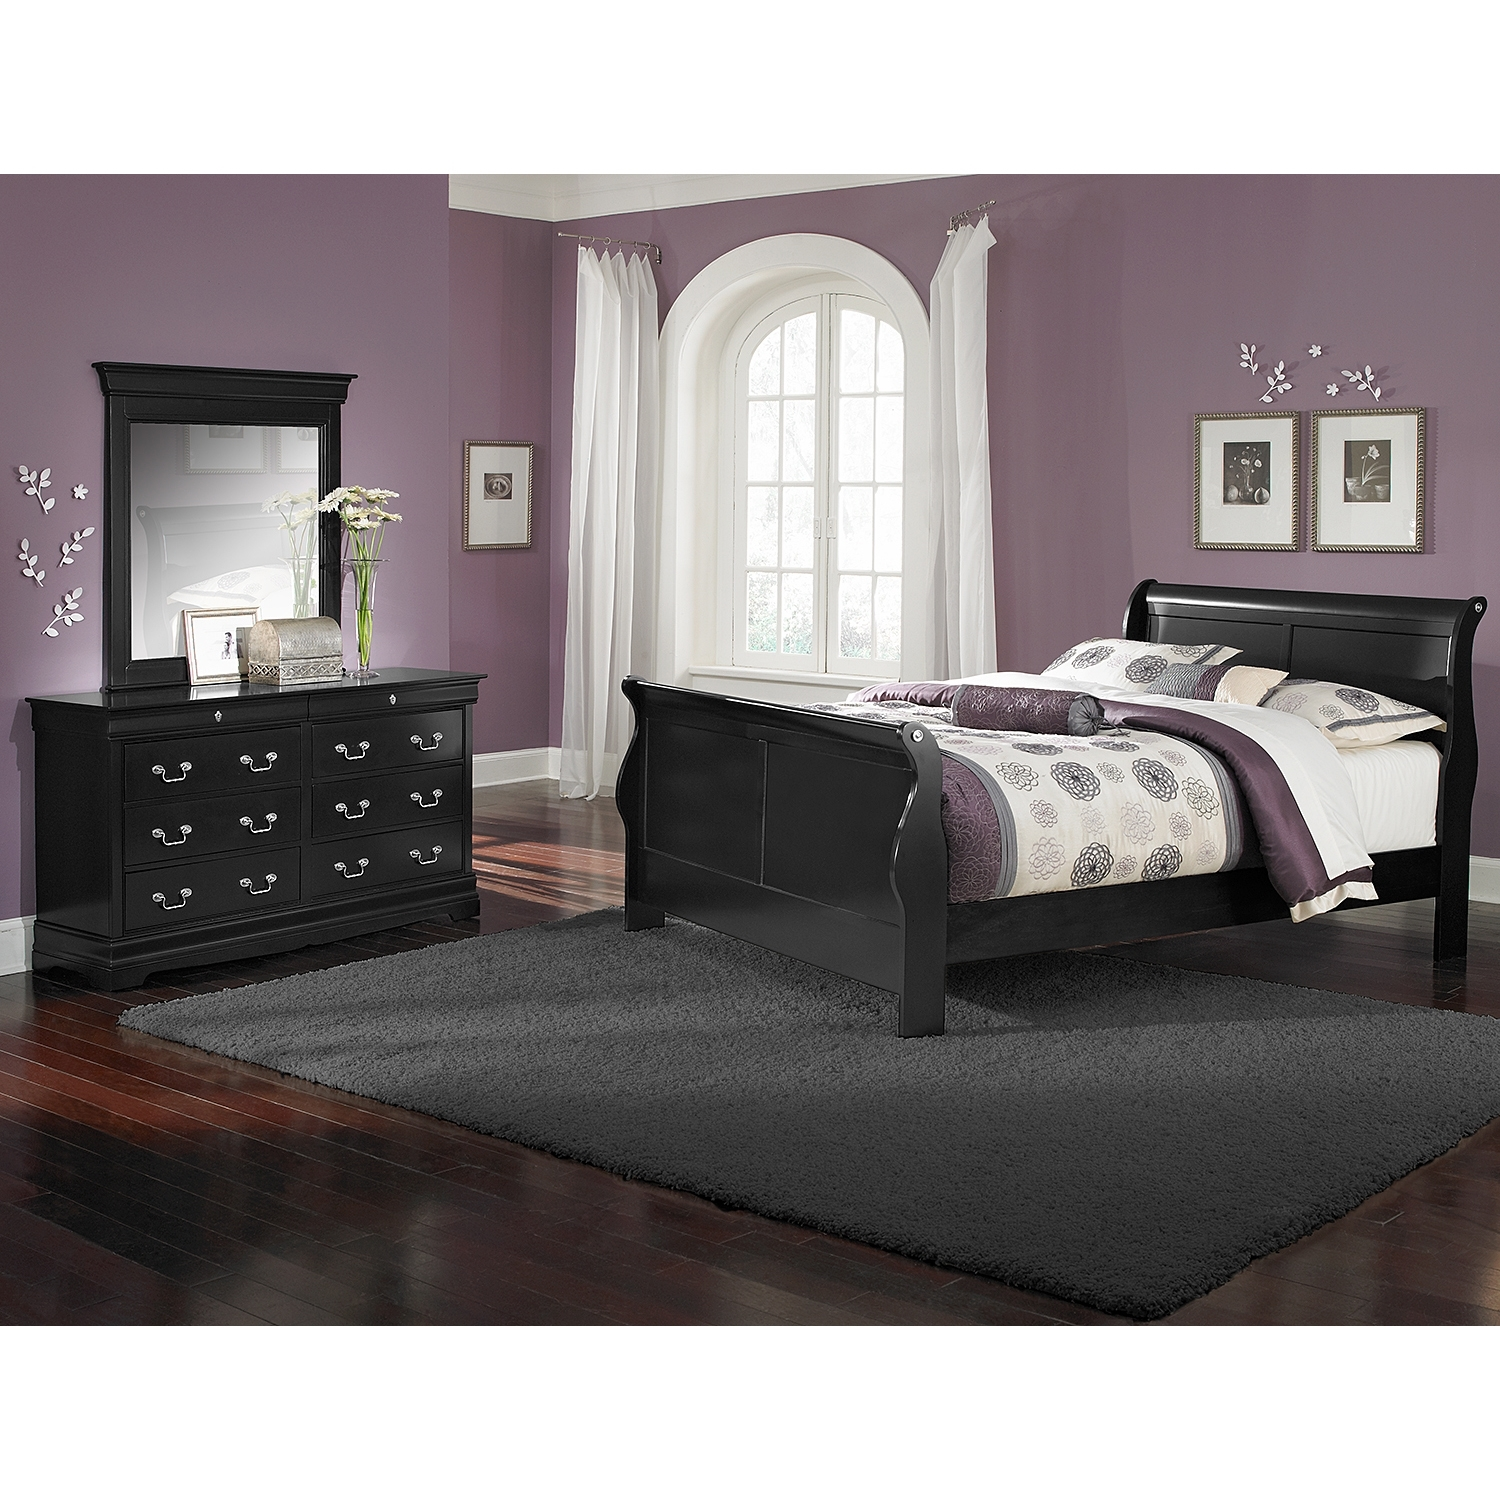 Ashley Furniture Black Bedroom Set Colors